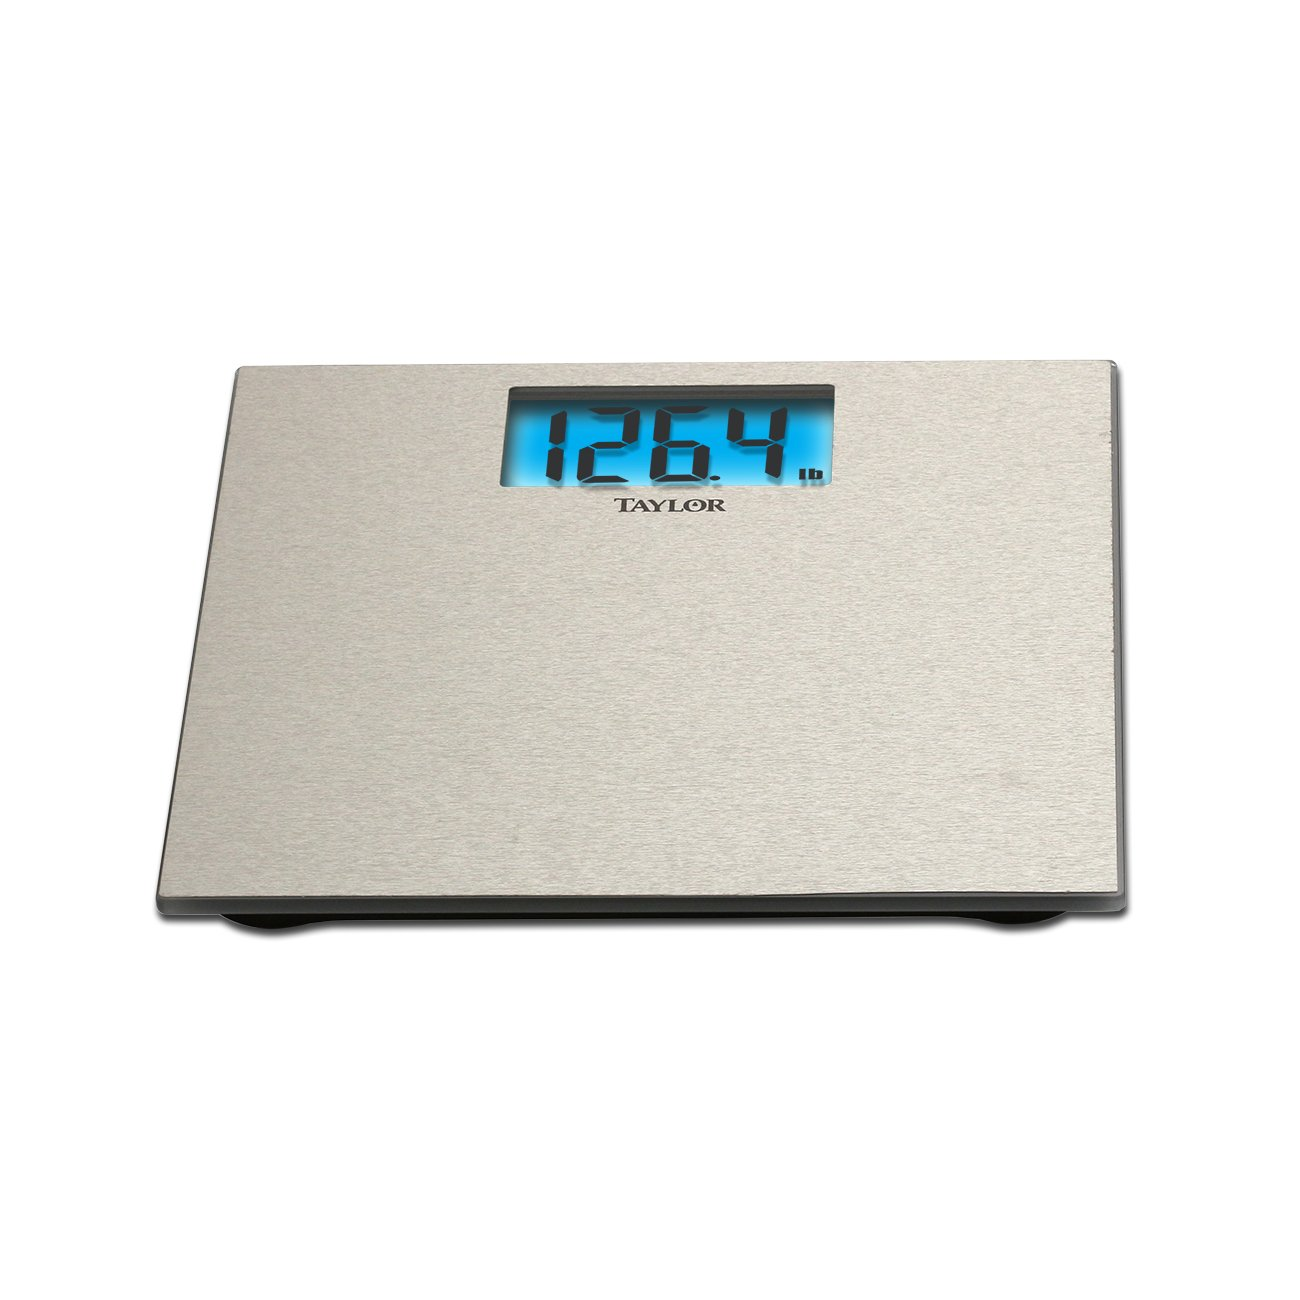 Taylor Precision Products Stainless Steel Electronic Scale 7413